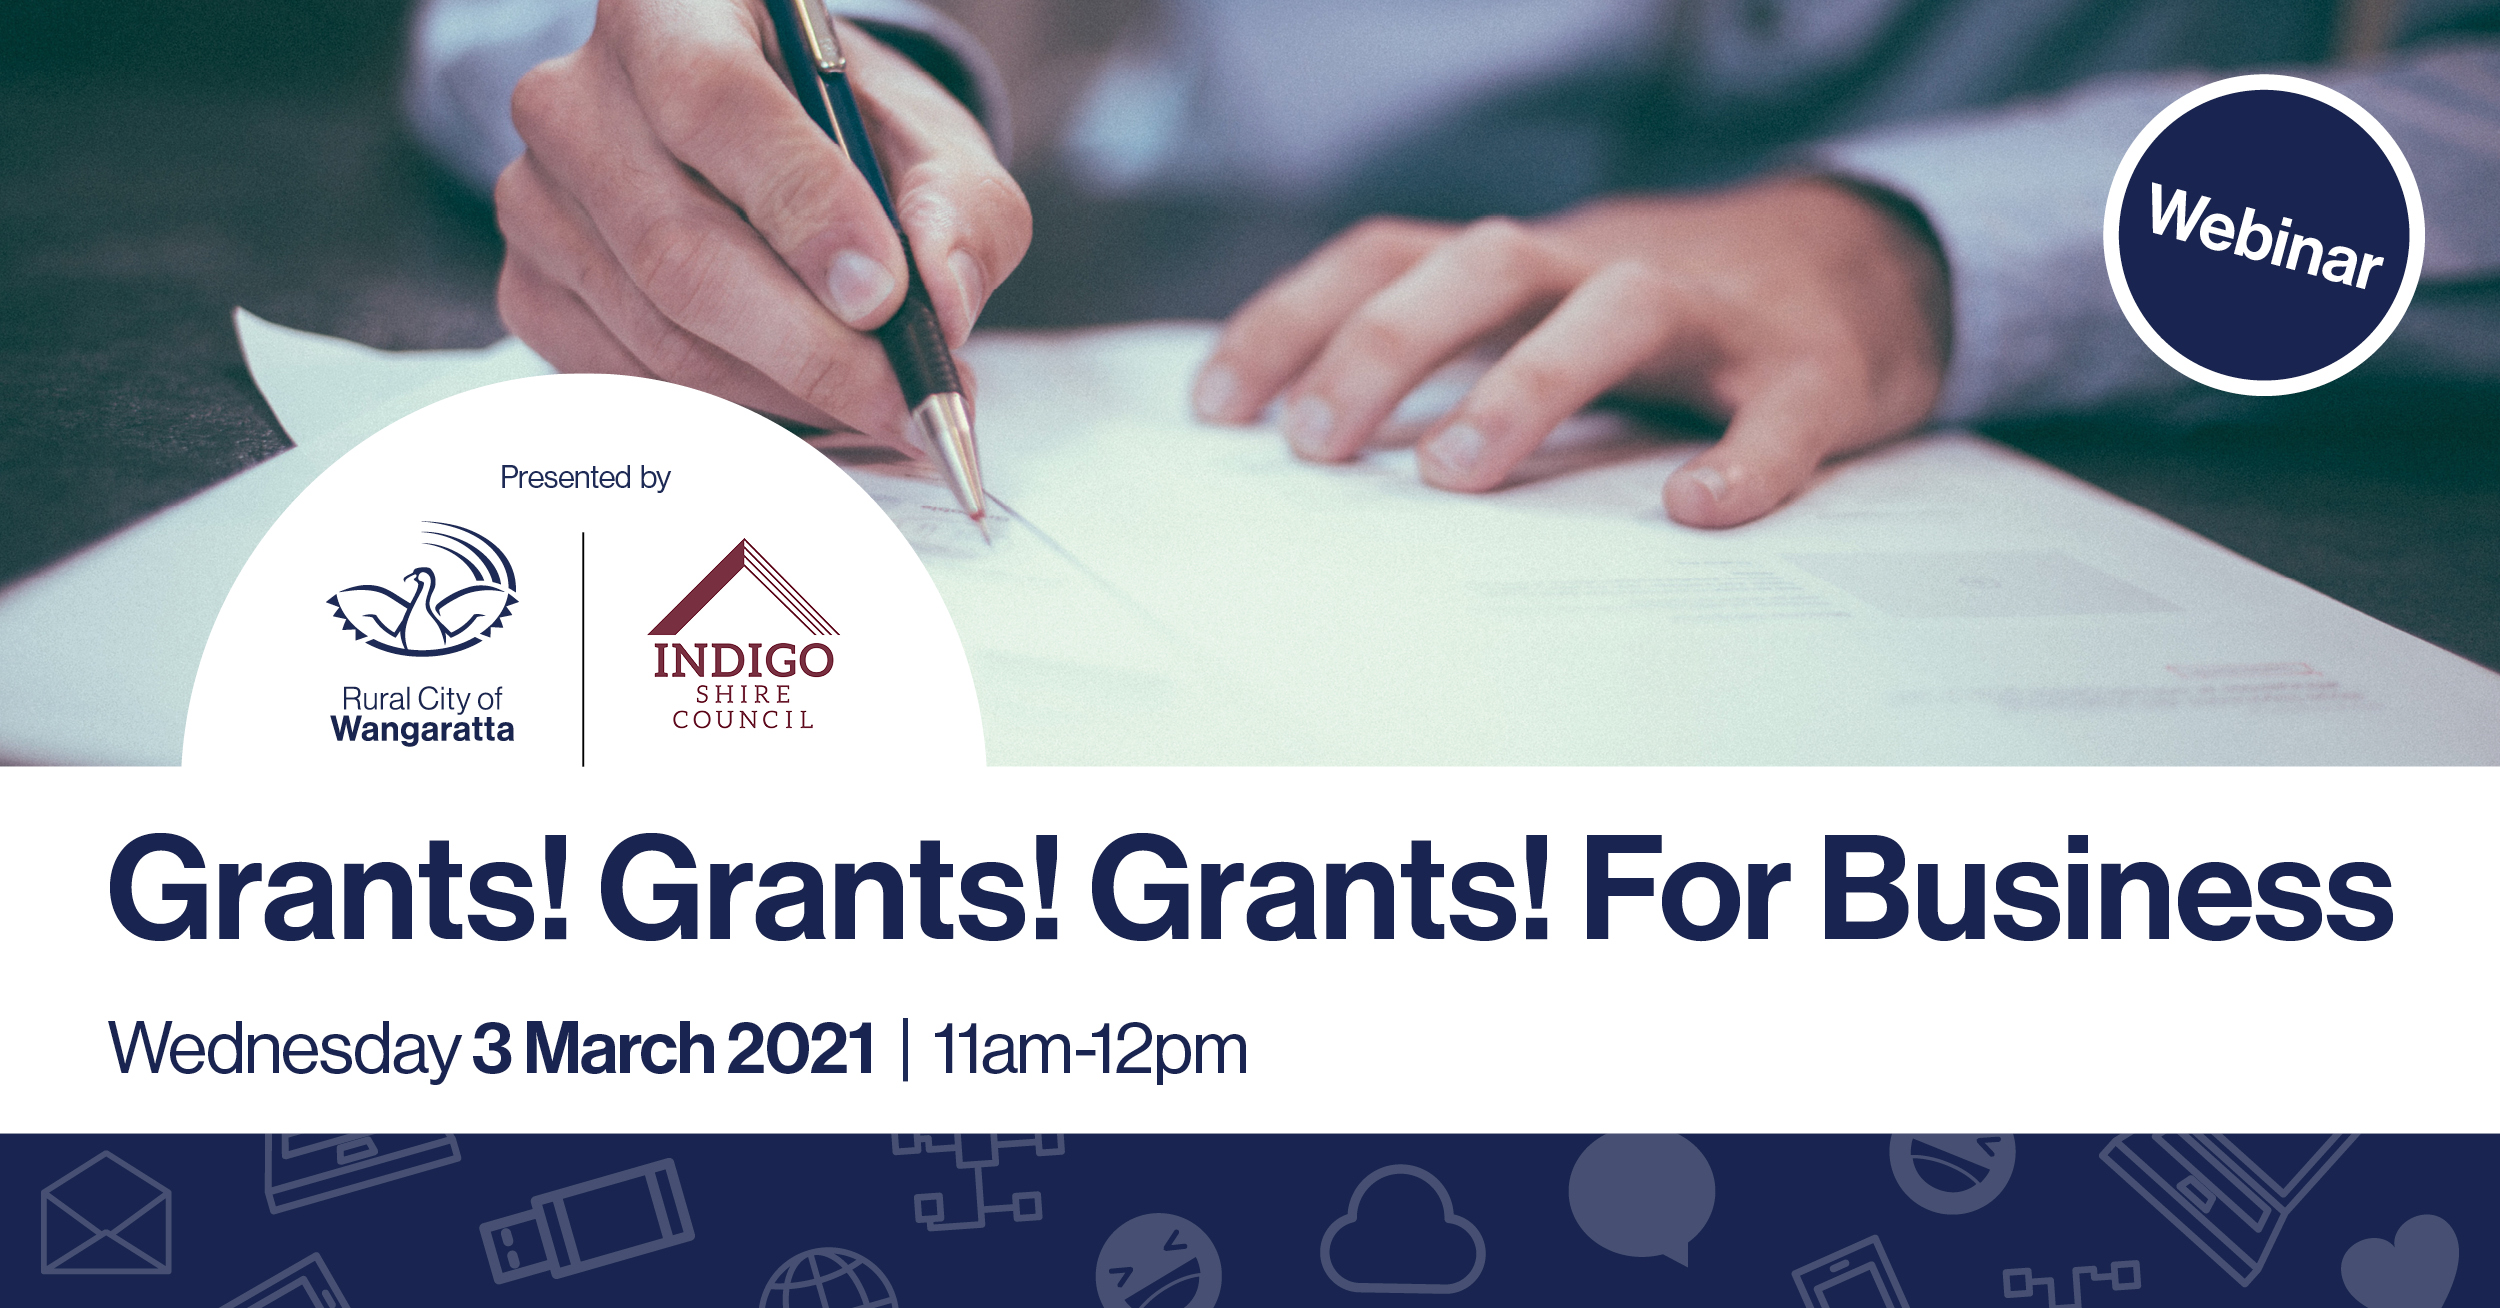 RCOW-031 Small Business Development Program-Facebook-Grants-Grants-Grants-1200x628.jpg